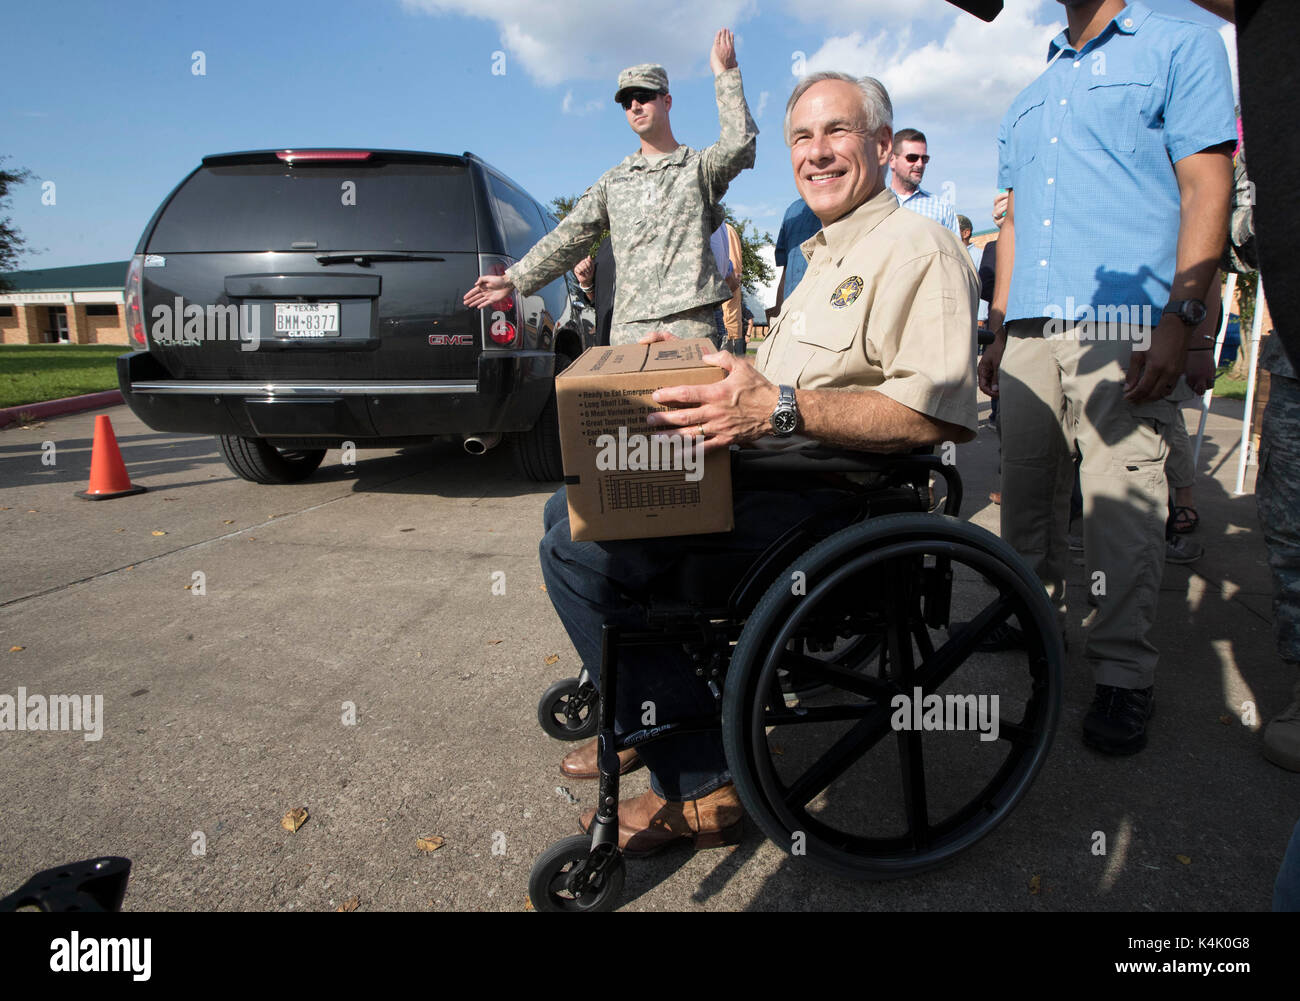 Beaumont, Texas USA Sept. 5, 2017: Texas Gov. Greg Abbott visits an aid distribution center for relief supplies as Southeast Texas continues to grapple with the destruction of Hurricane Harvey almost two weeks ago. Credit: Bob Daemmrich/Alamy Live News - Stock Image